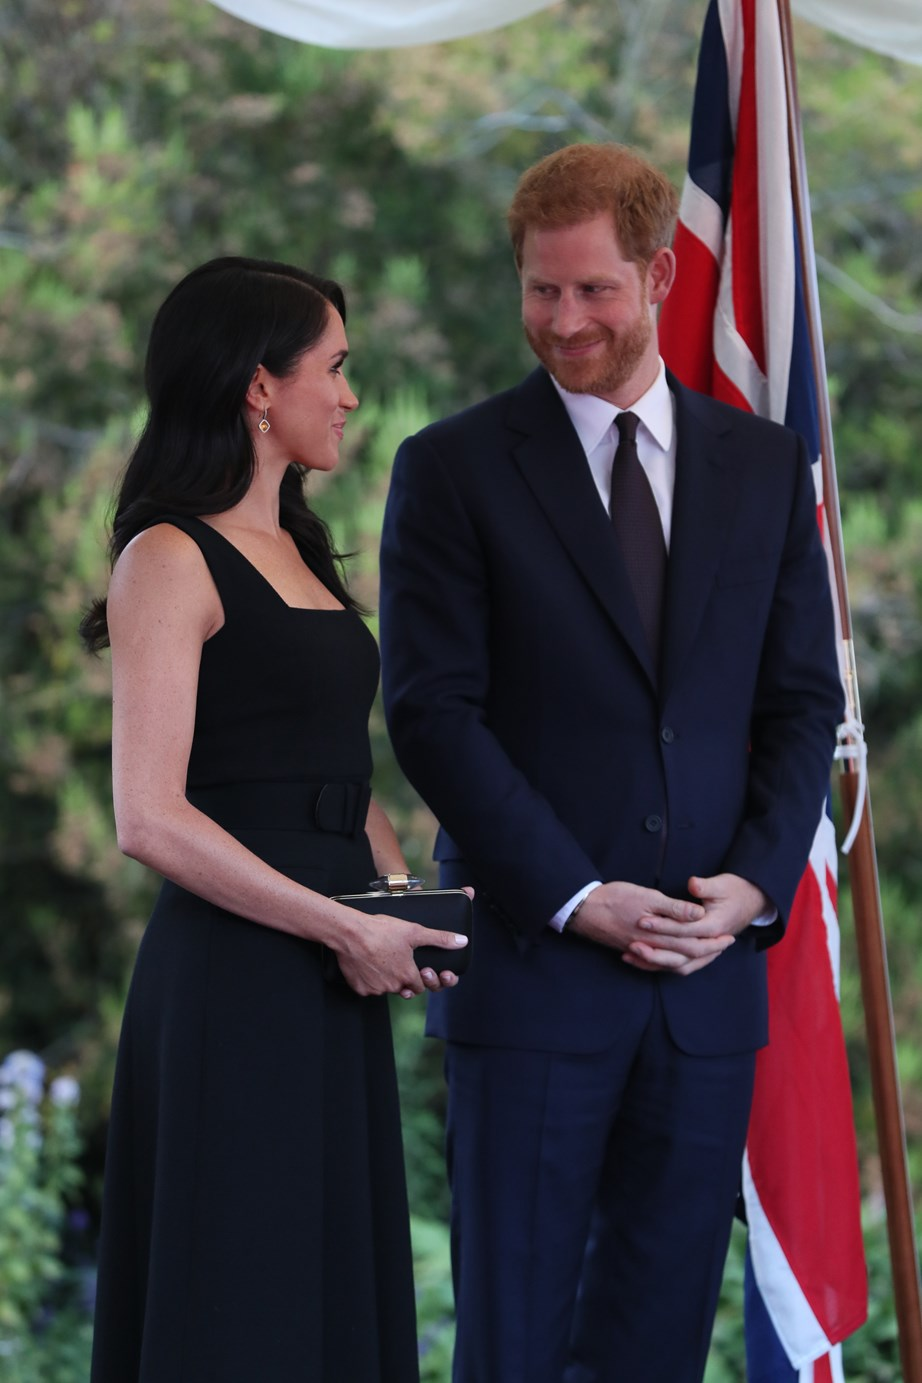 Harry couldn't take his eyes of of Meghan - who looked stunning in a dress from New Zealand designer Emilia Wickstead.